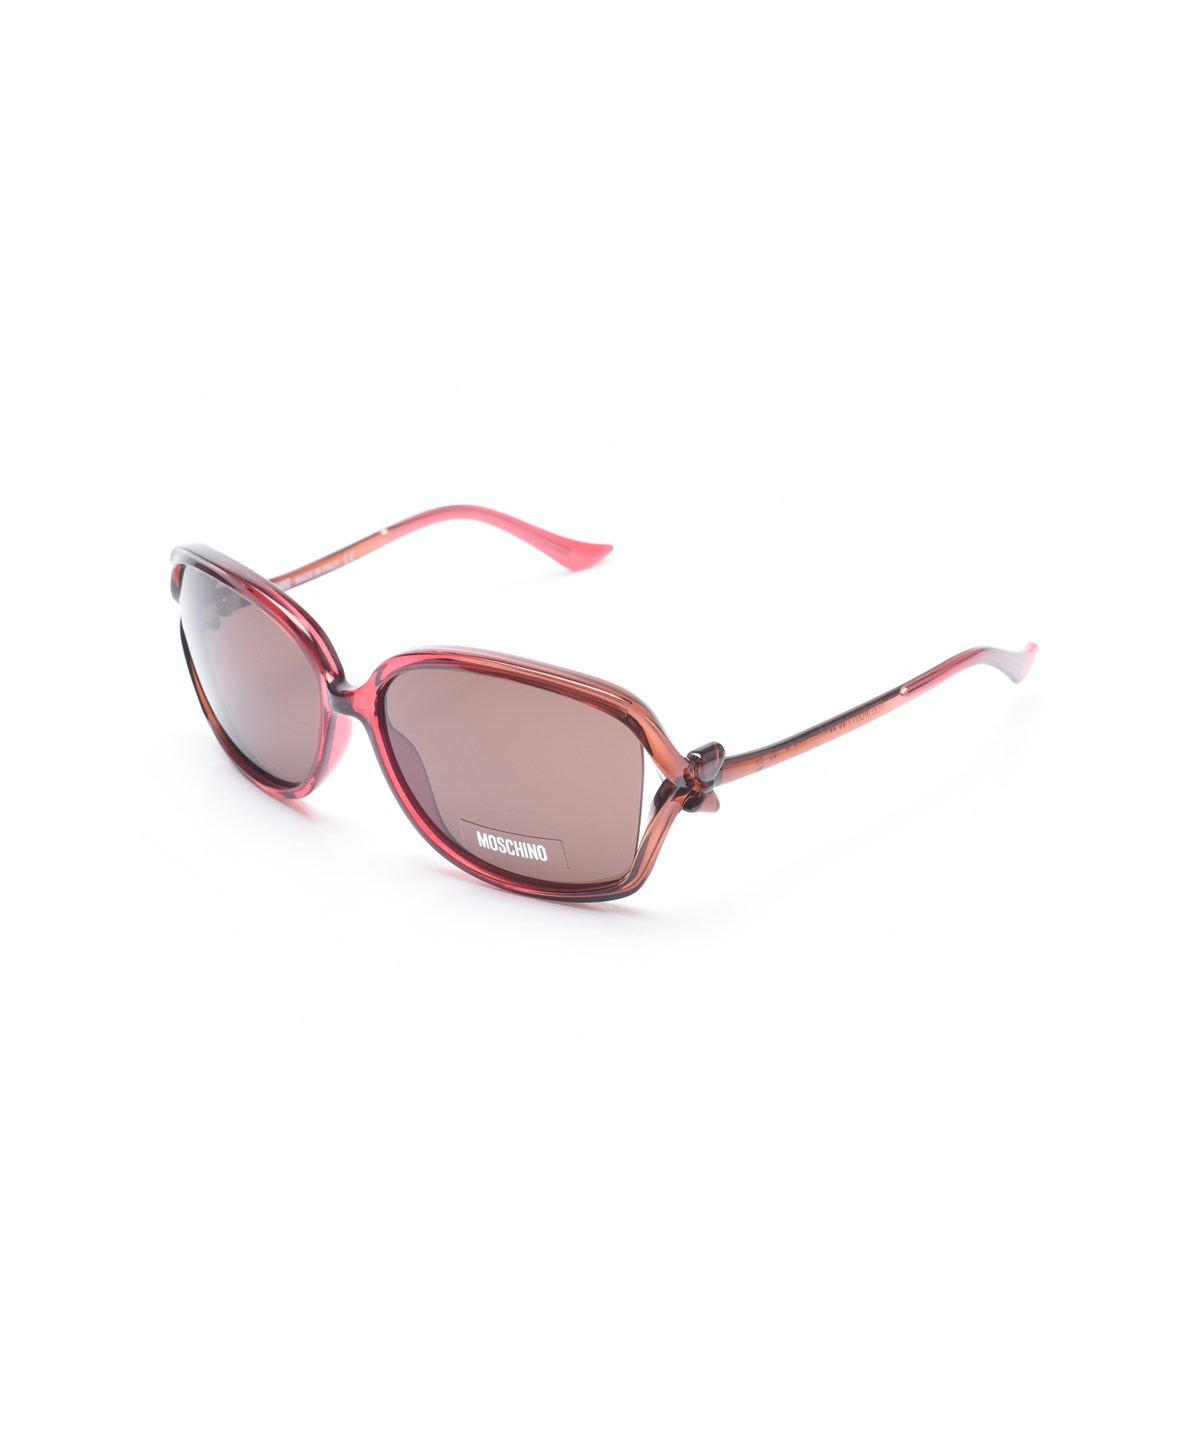 Moschino Women's  Bow Detailed Oversized Sunglasses Red